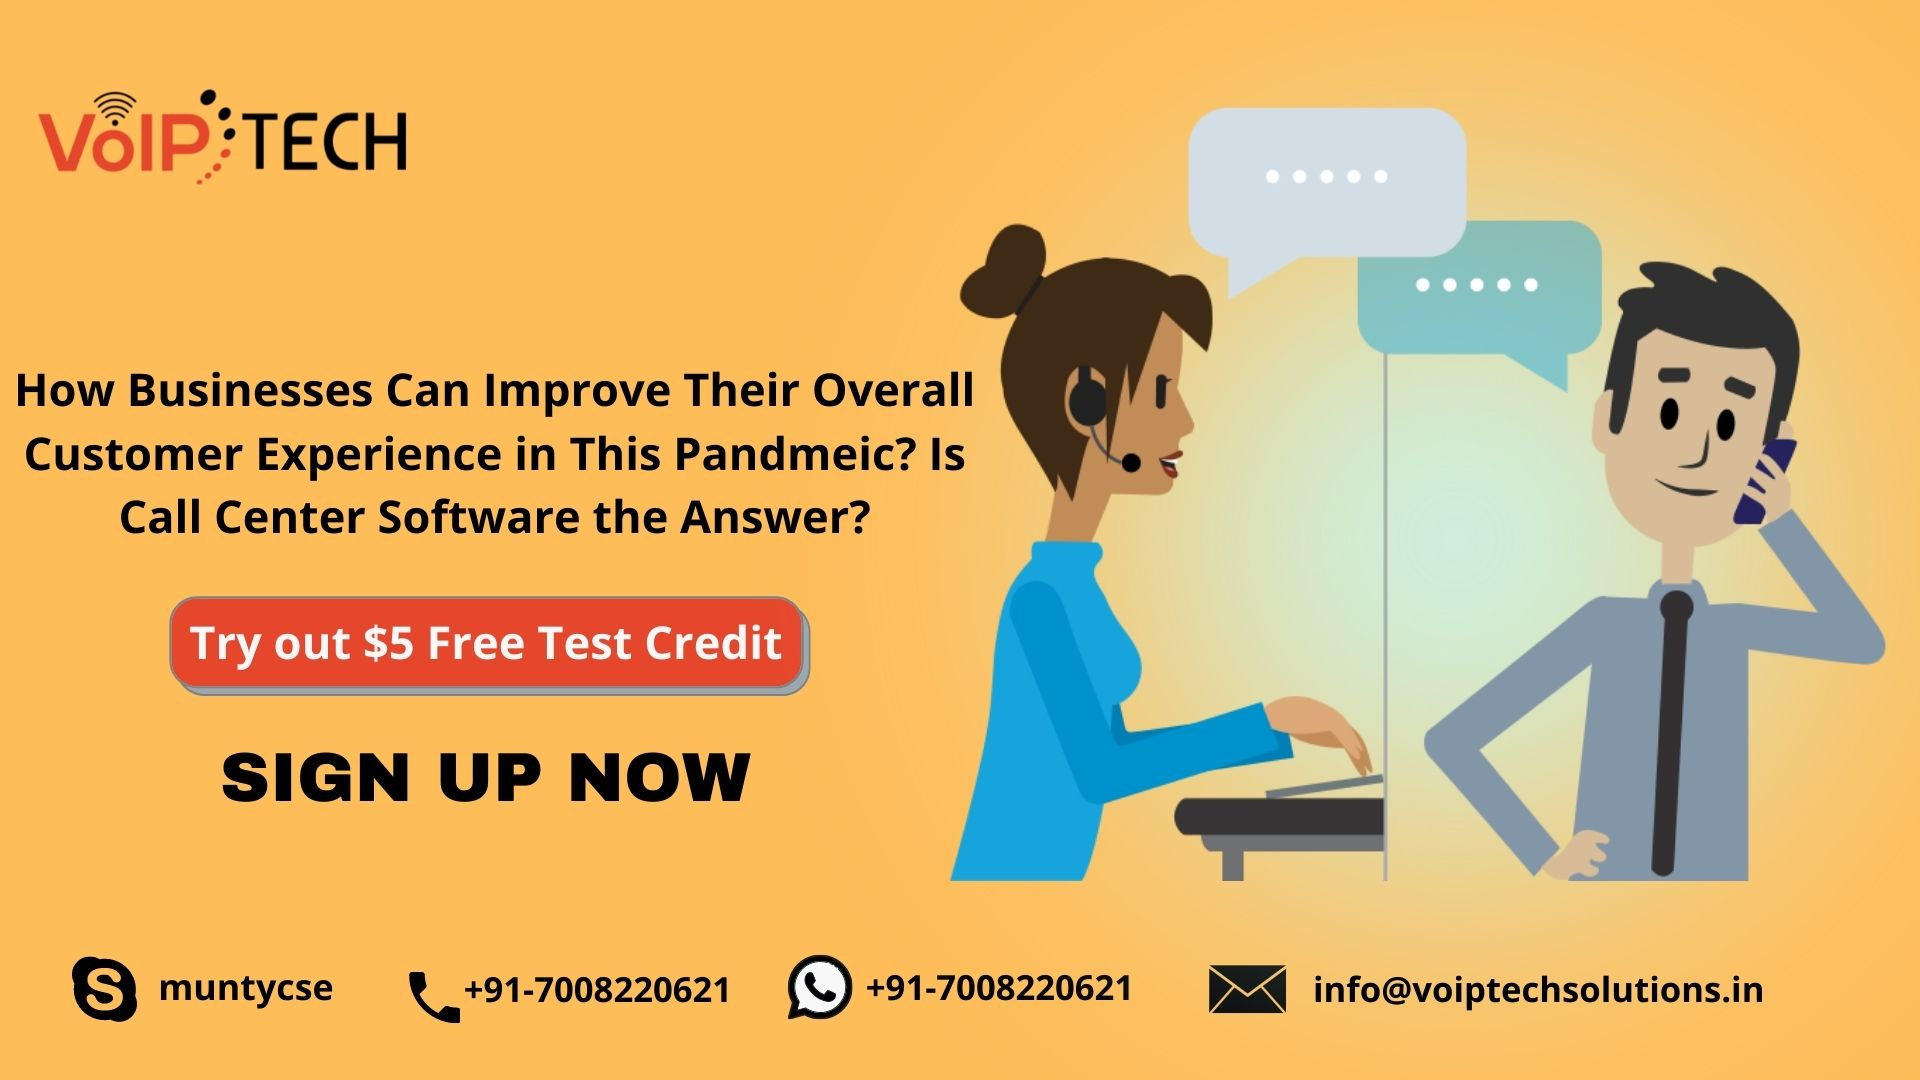 Call Center Software, How Businesses Can Improve Their Overall Customer Experience in This Pandmeic? Is Call Center Software the Answer?, VoIP tech solutions, vici dialer, virtual number, Voip Providers, voip services in india, best sip provider, business voip providers, VoIP Phone Numbers, voip minutes provider, top voip providers, voip minutes, International VoIP Provider